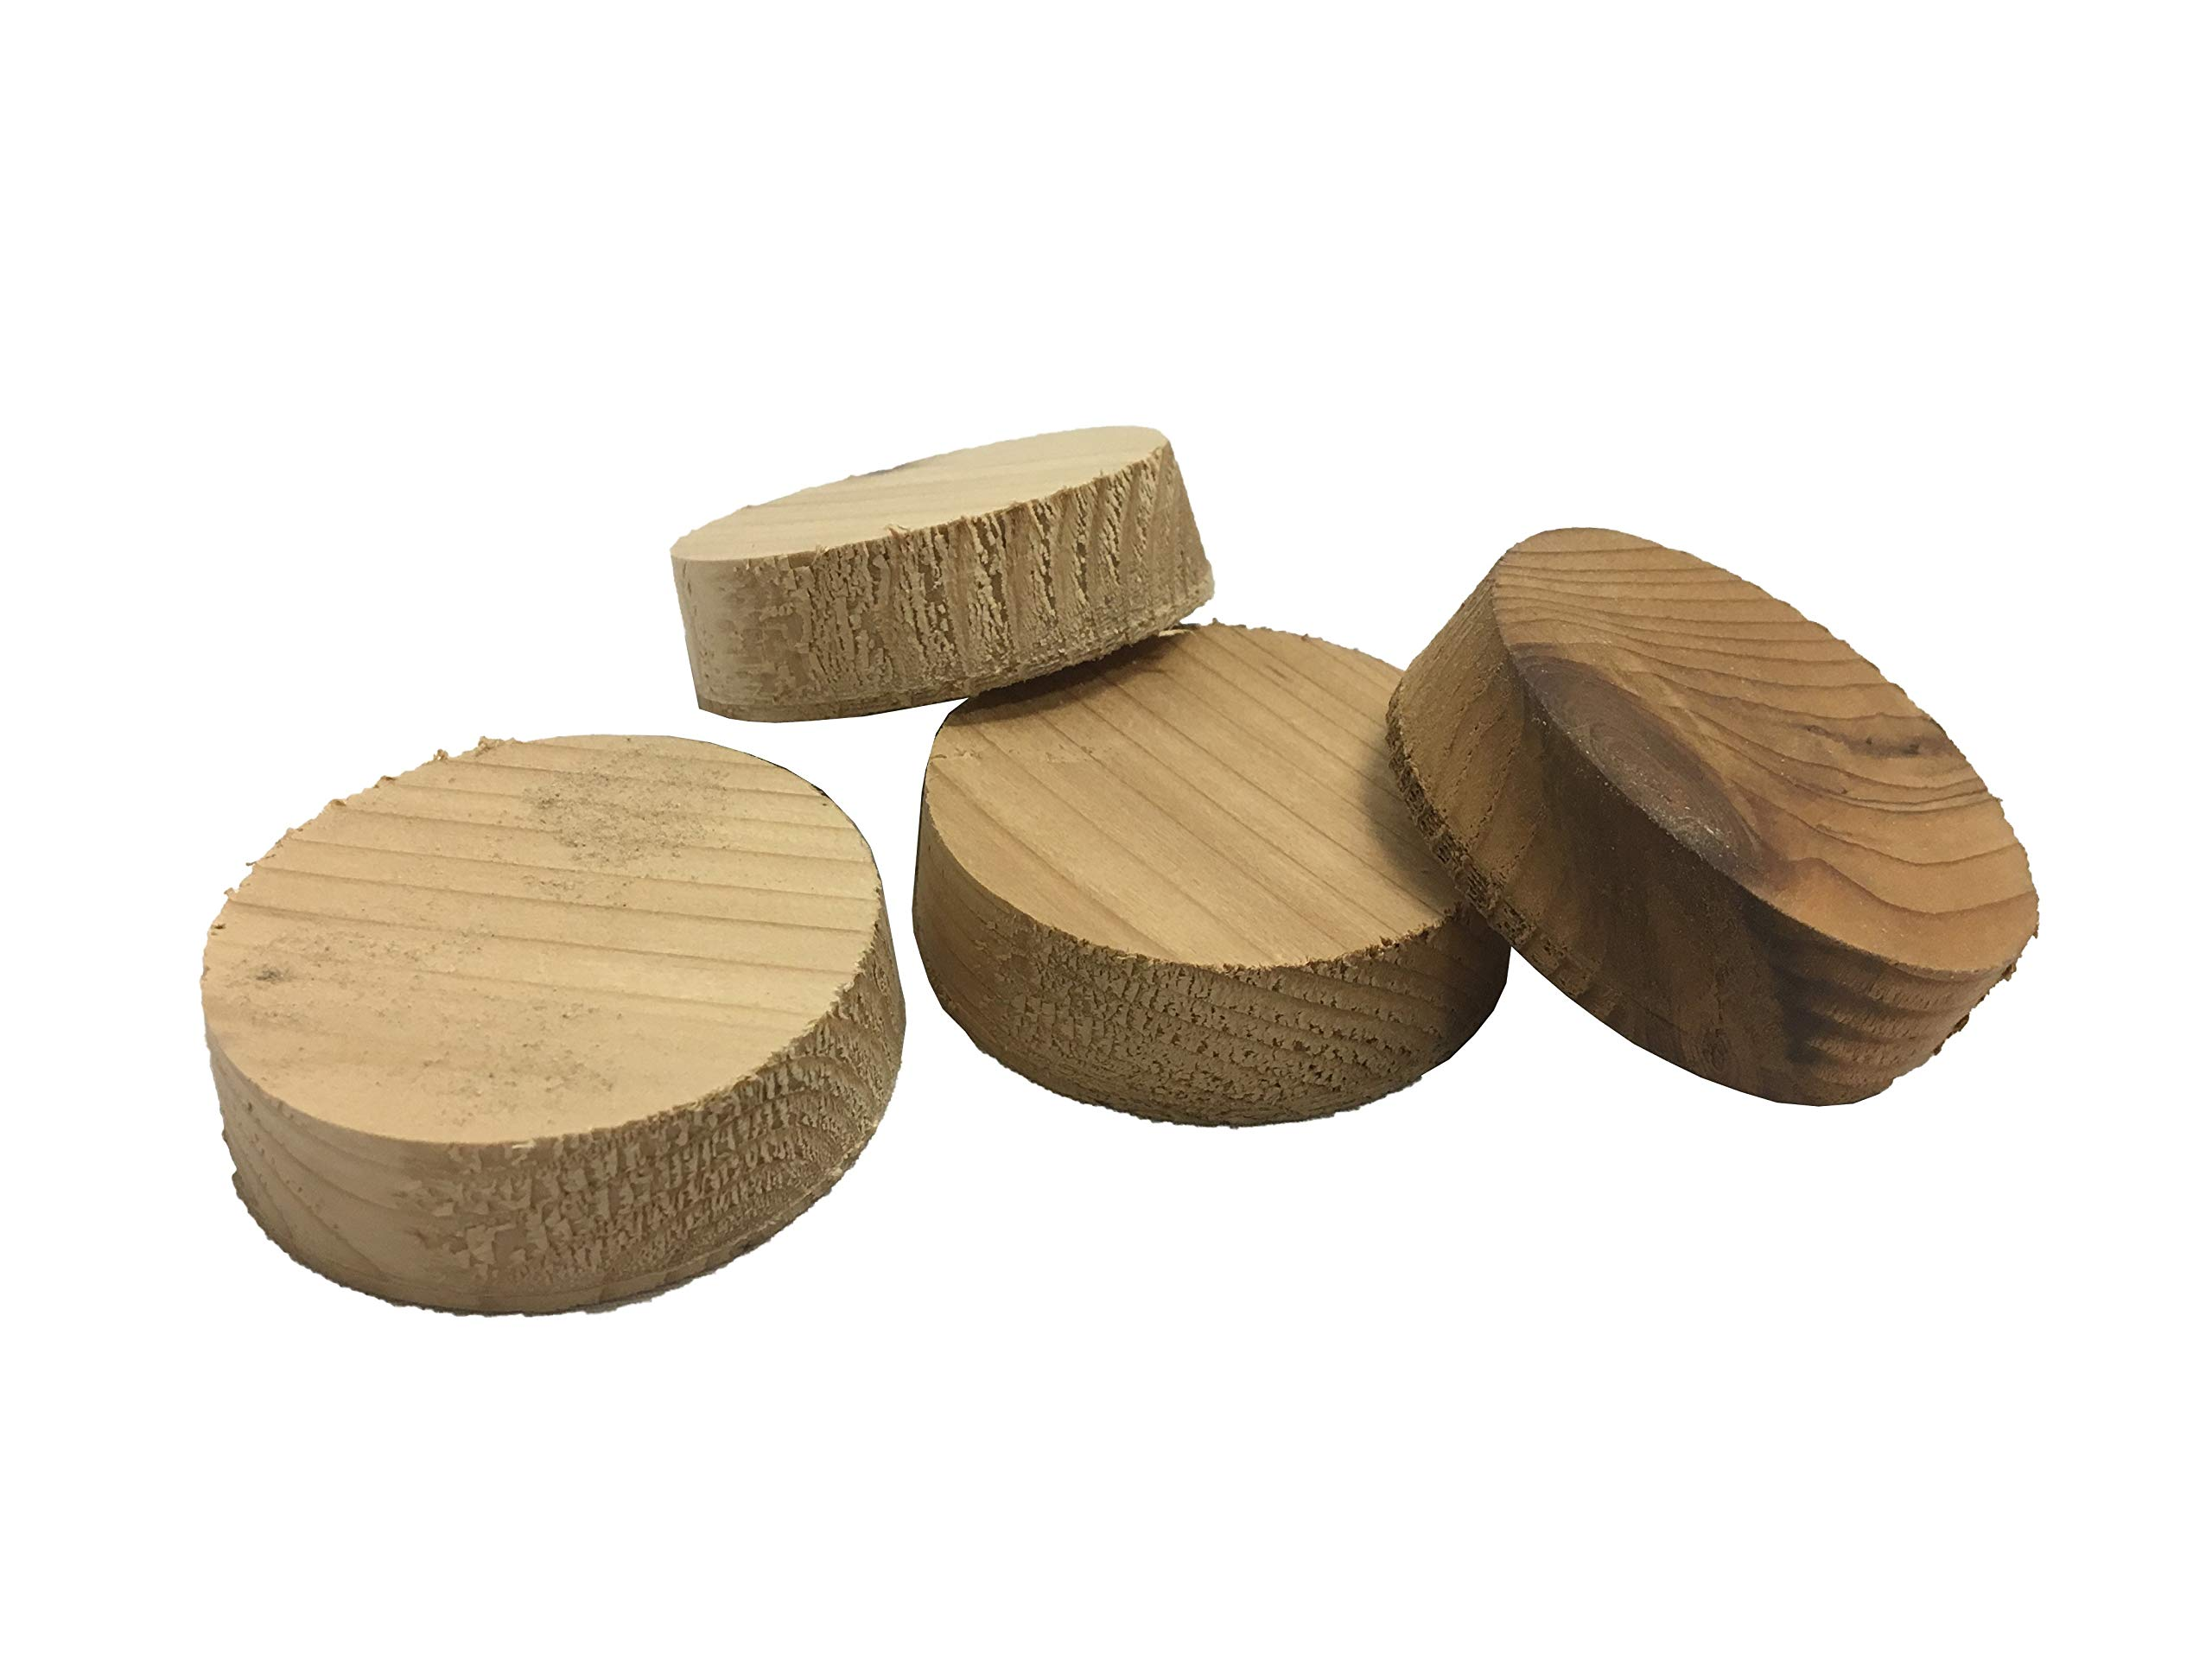 1 1/8 Inch Cedar Wood Insulation Plugs (Bag of 225) by J&R Products, Inc (Image #1)